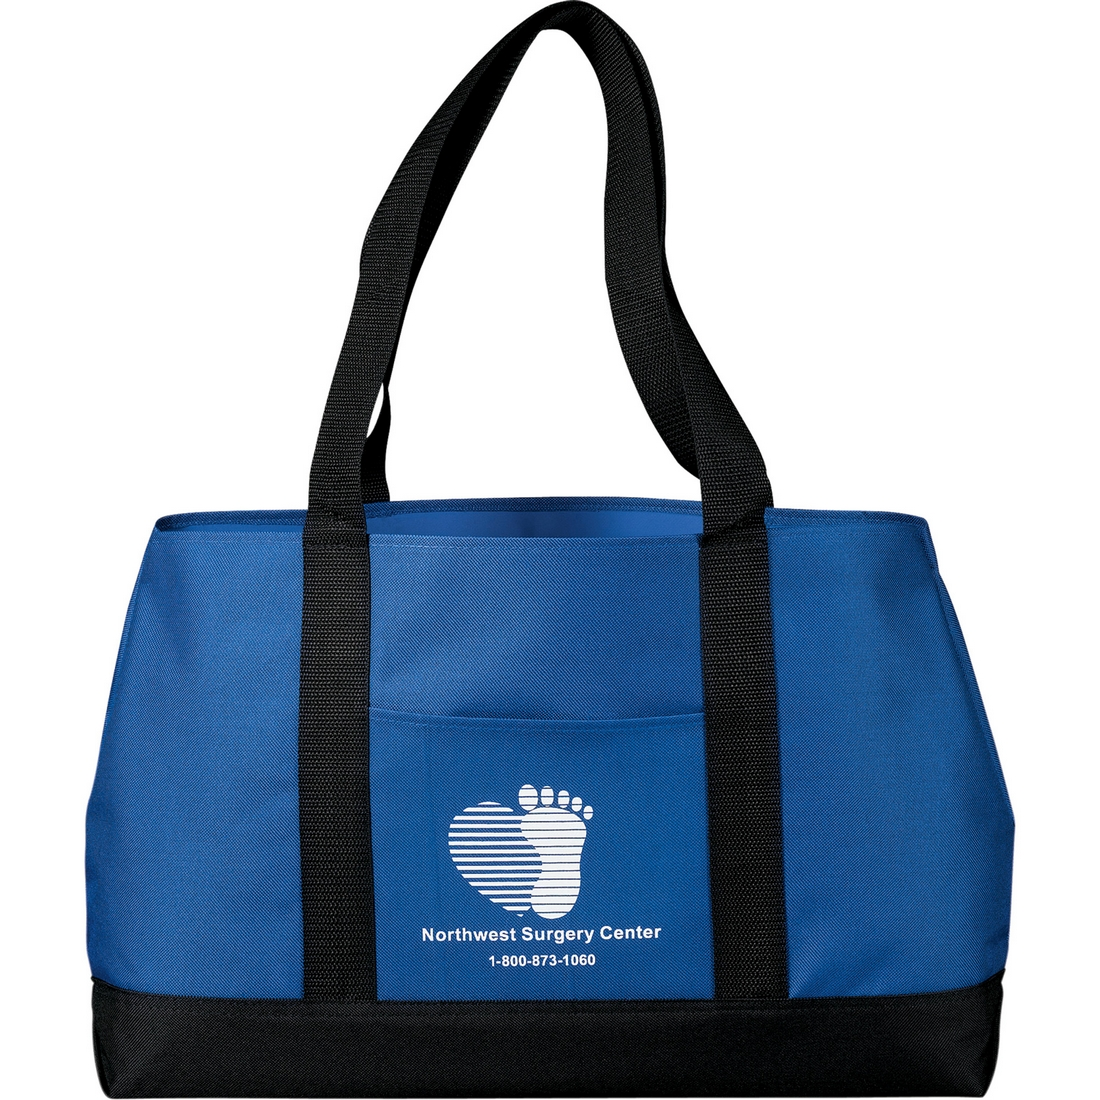 Custom Printed Tote Bags with Sturdy Handle - Blueberry Ink 923a16df7